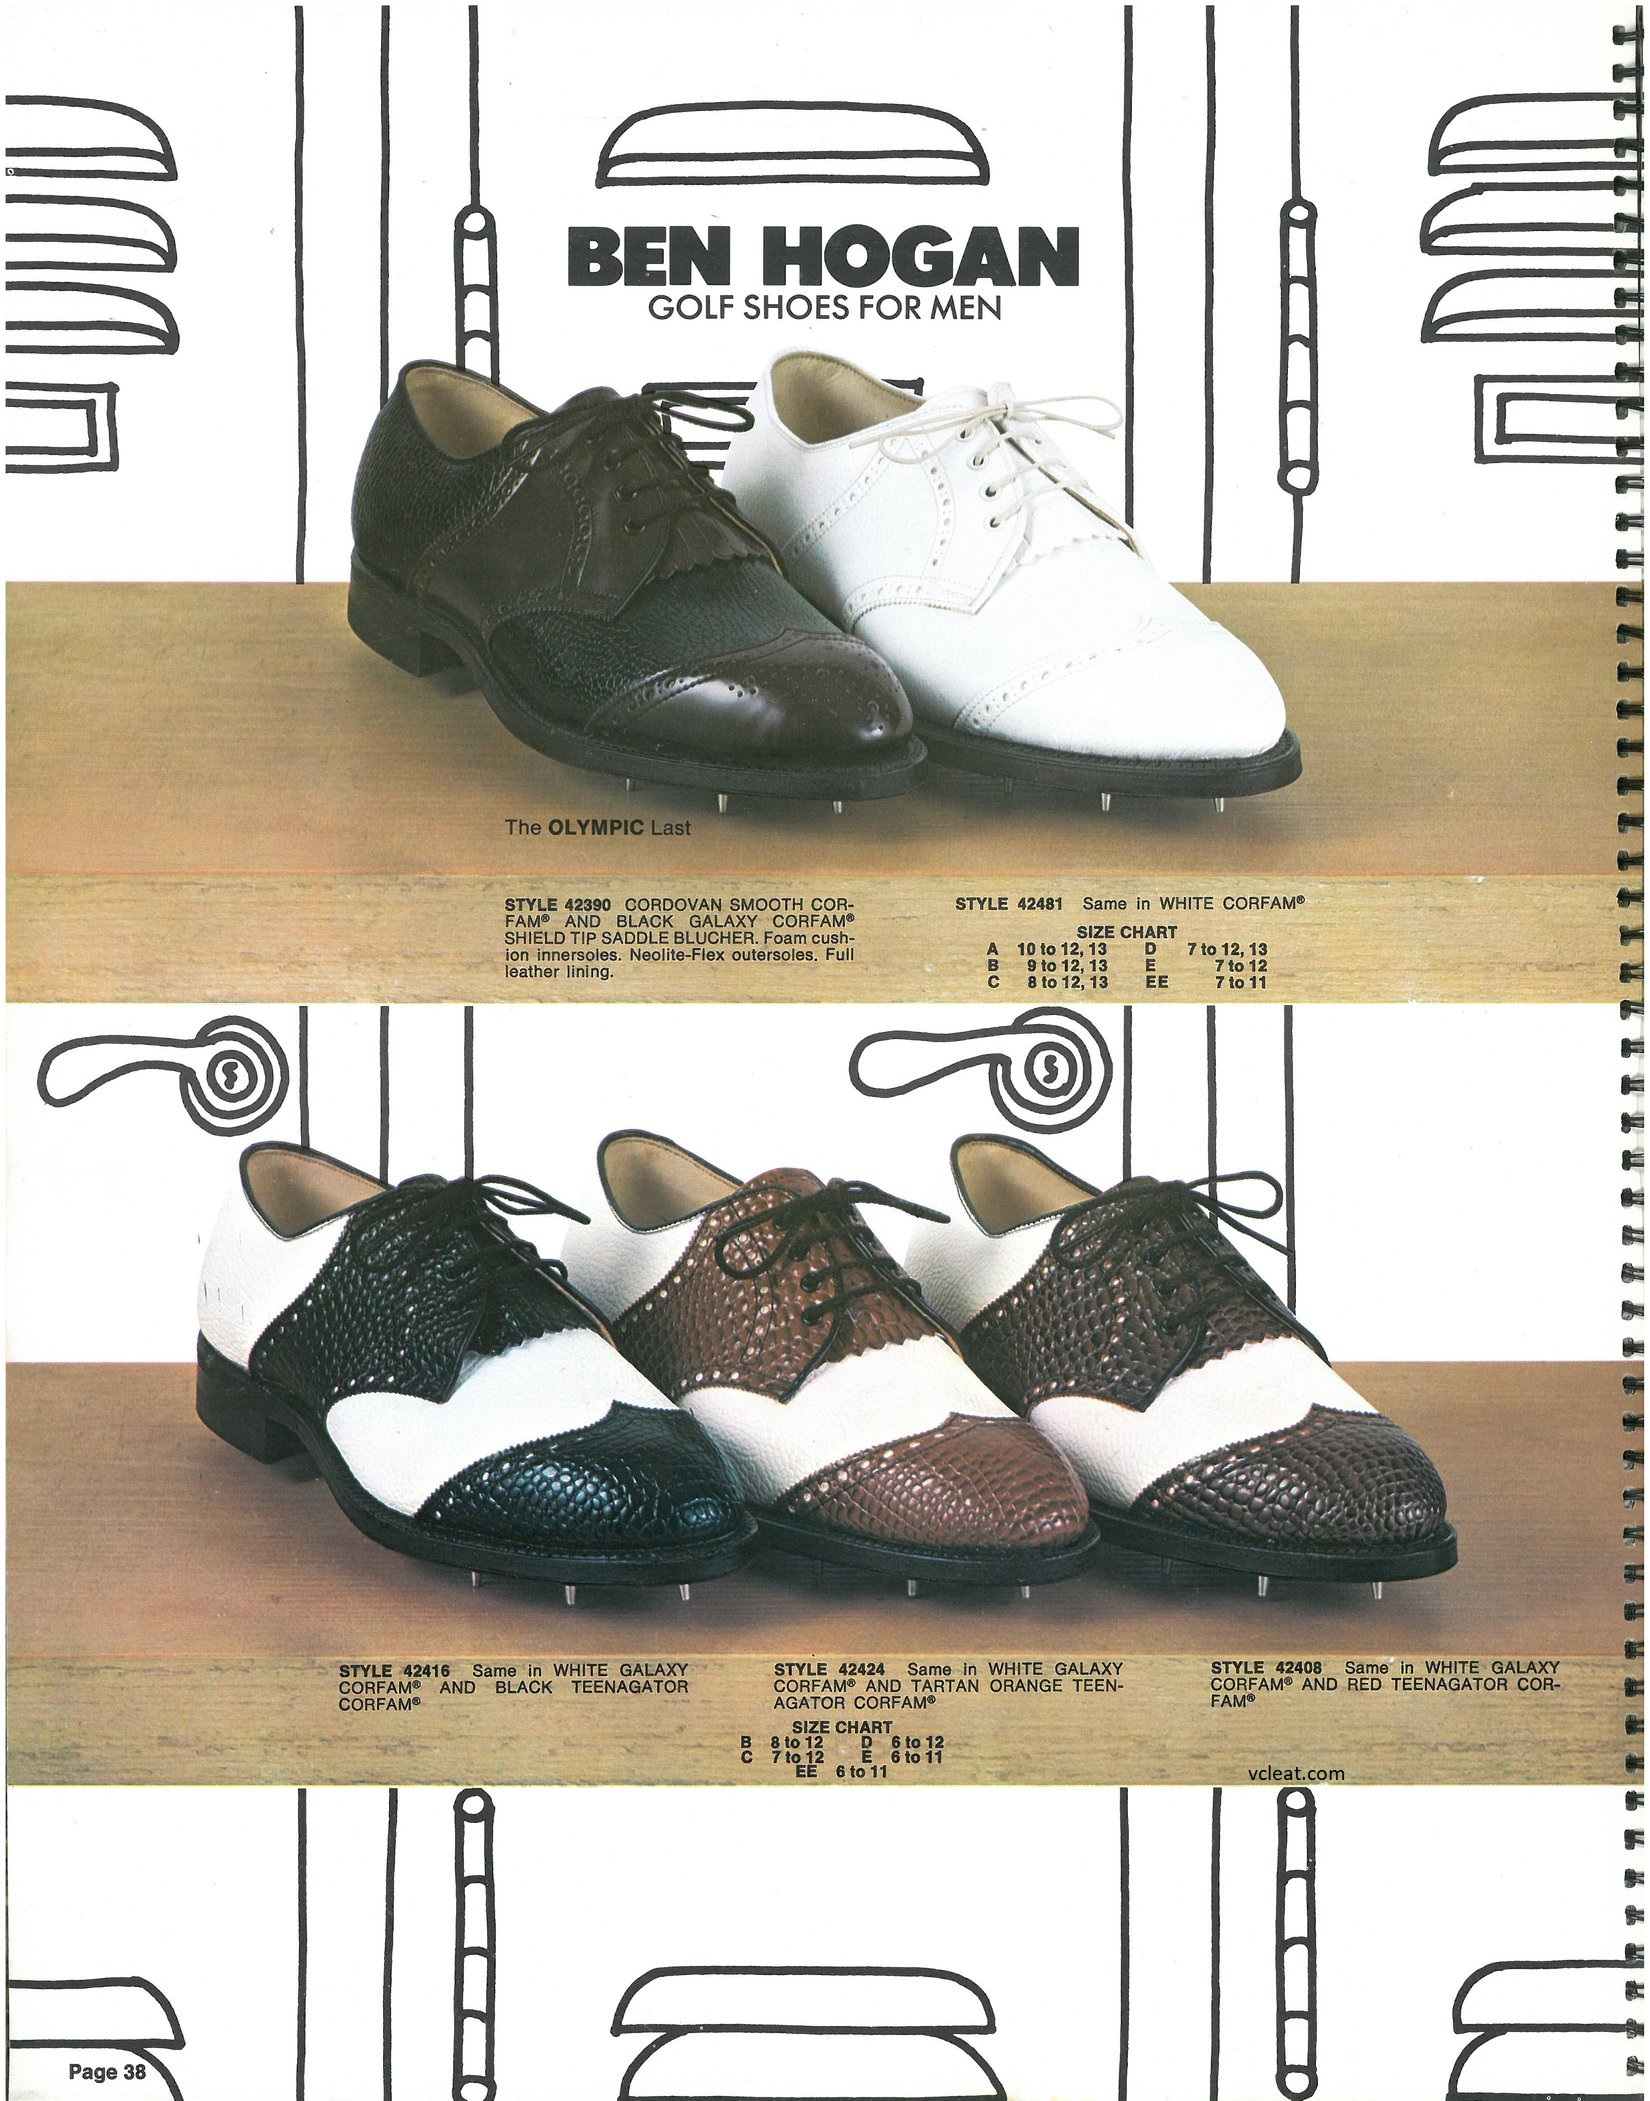 Vintage FootJoy Ben Hogan Golf Shoes